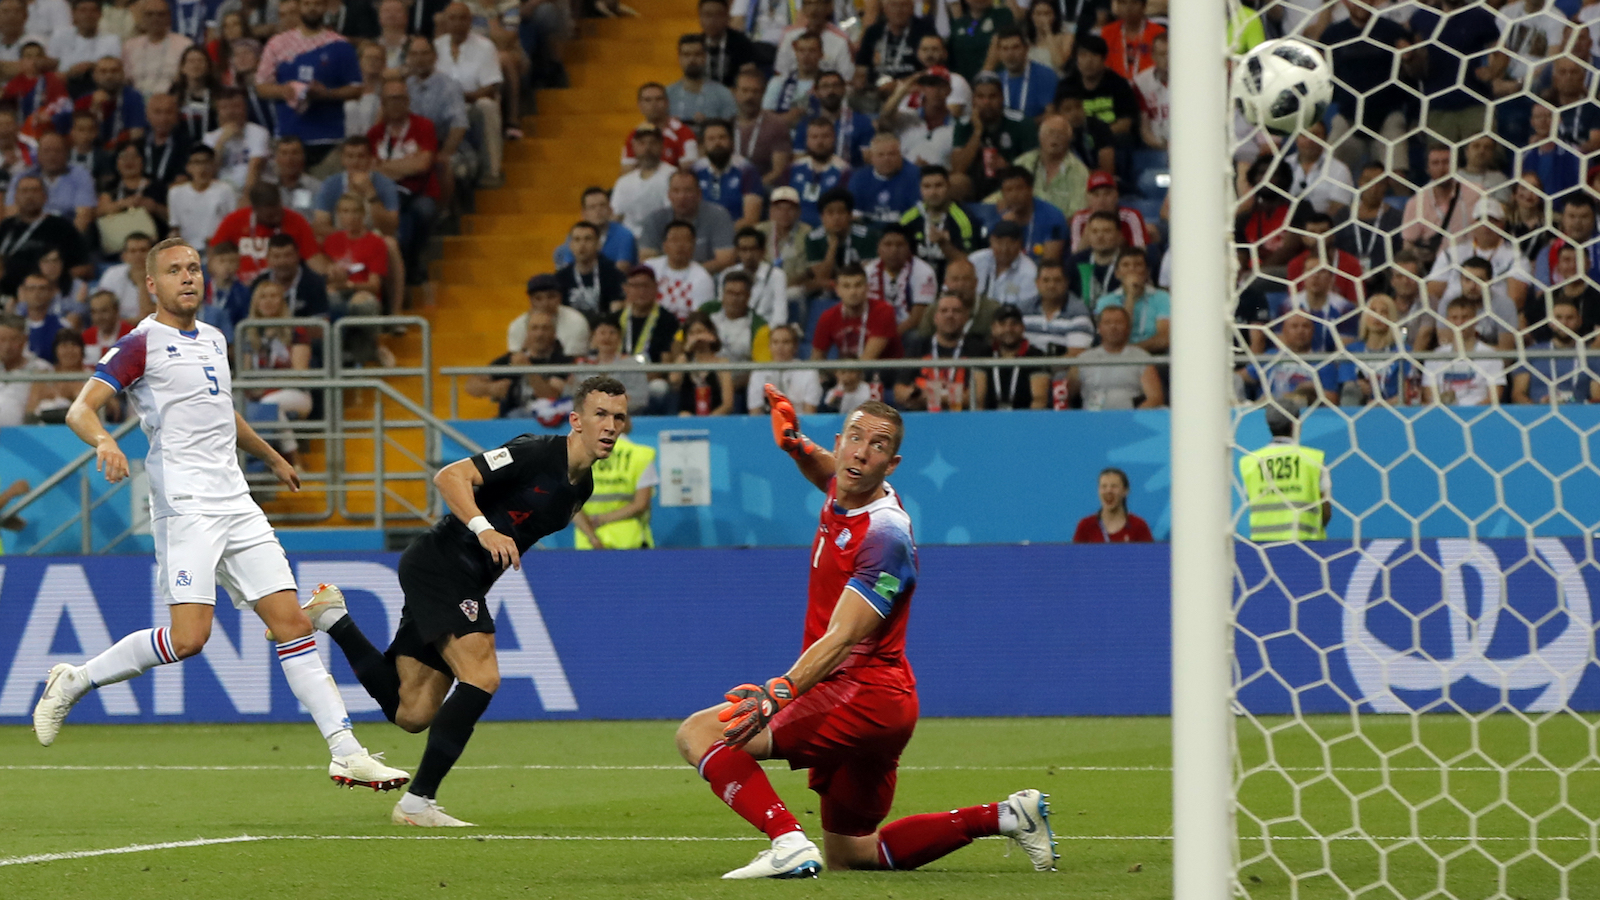 Croatia's Ivan Perisic, center, scores his side's second goal during the group D match between Iceland and Croatia, at the 2018 soccer World Cup in the Rostov Arena in Rostov-on-Don, Russia, Tuesday, June 26, 2018. (AP Photo/Vadim Ghirda)